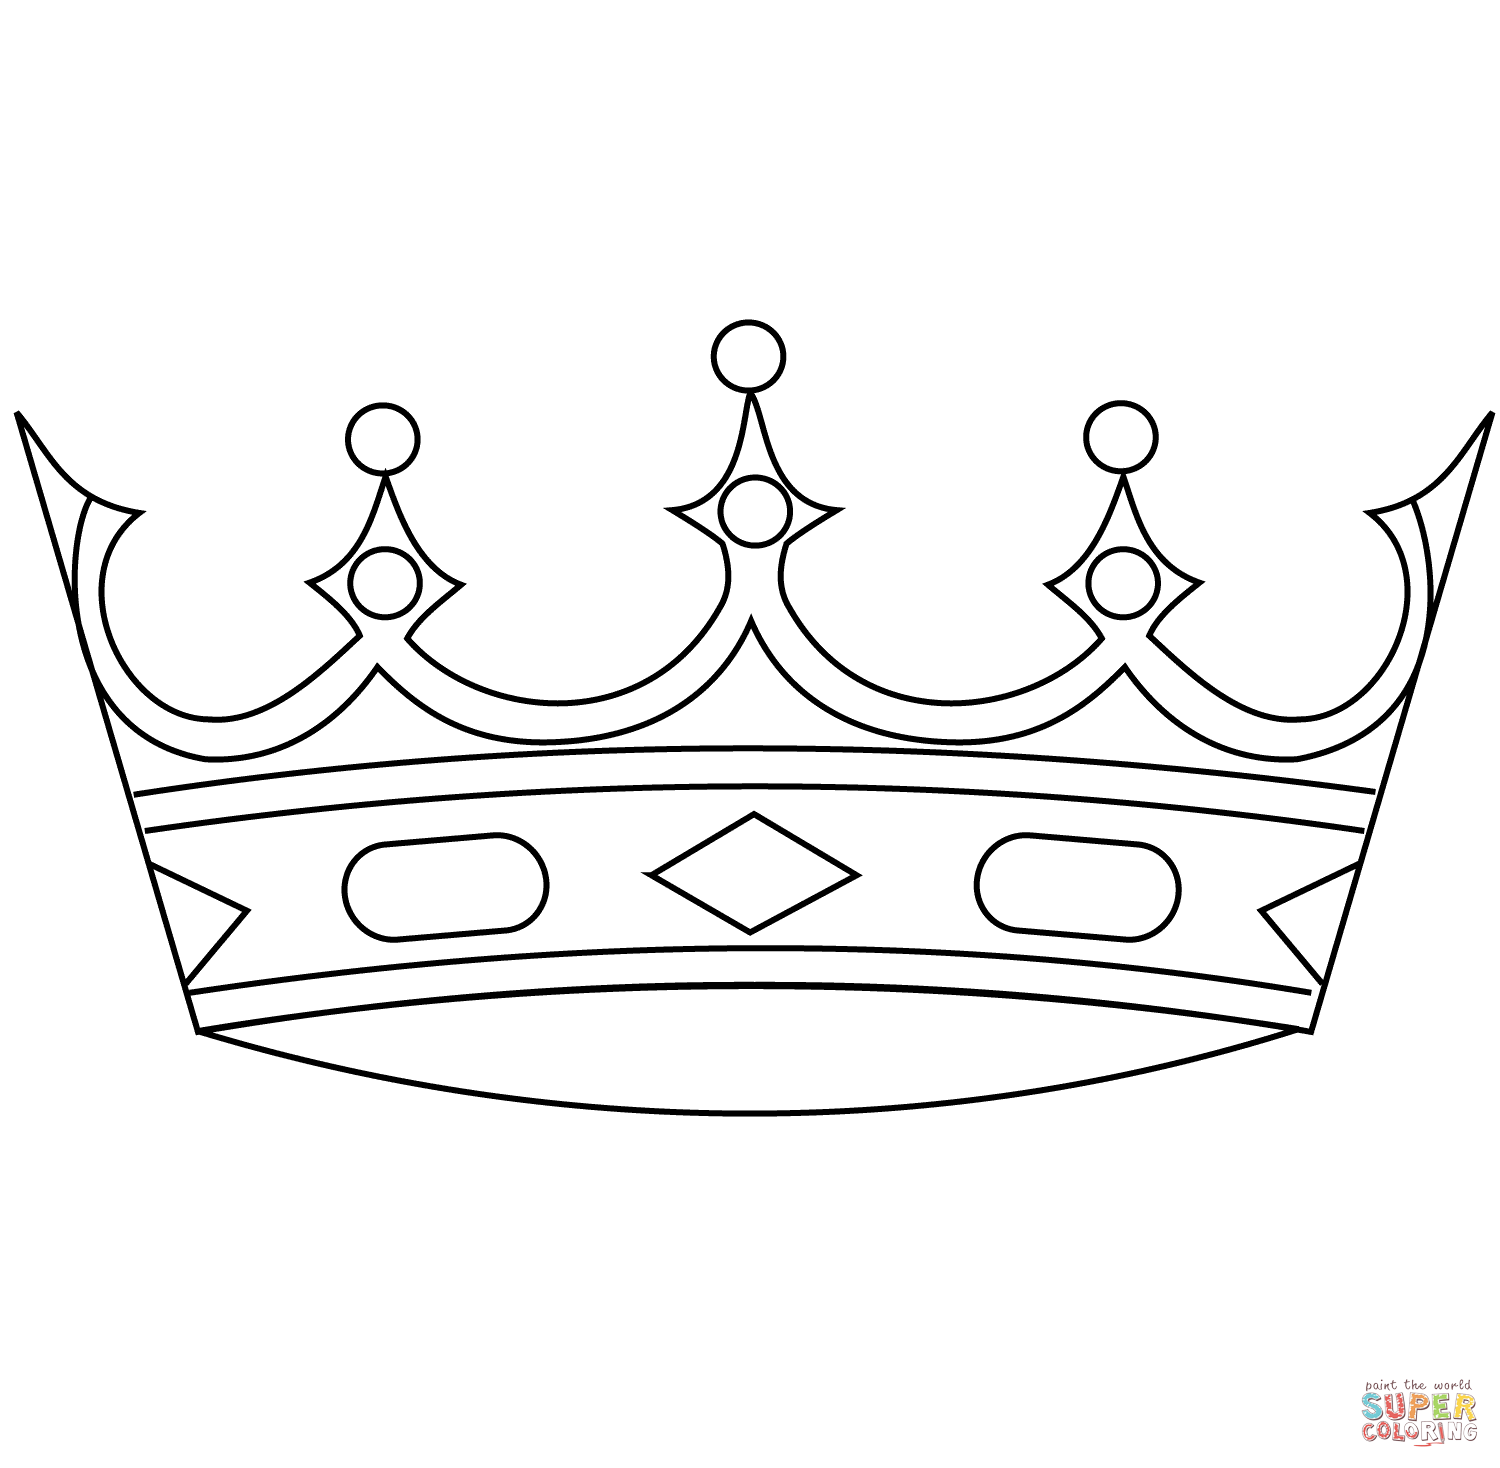 Crown coloring page | Free Printable Coloring Pages